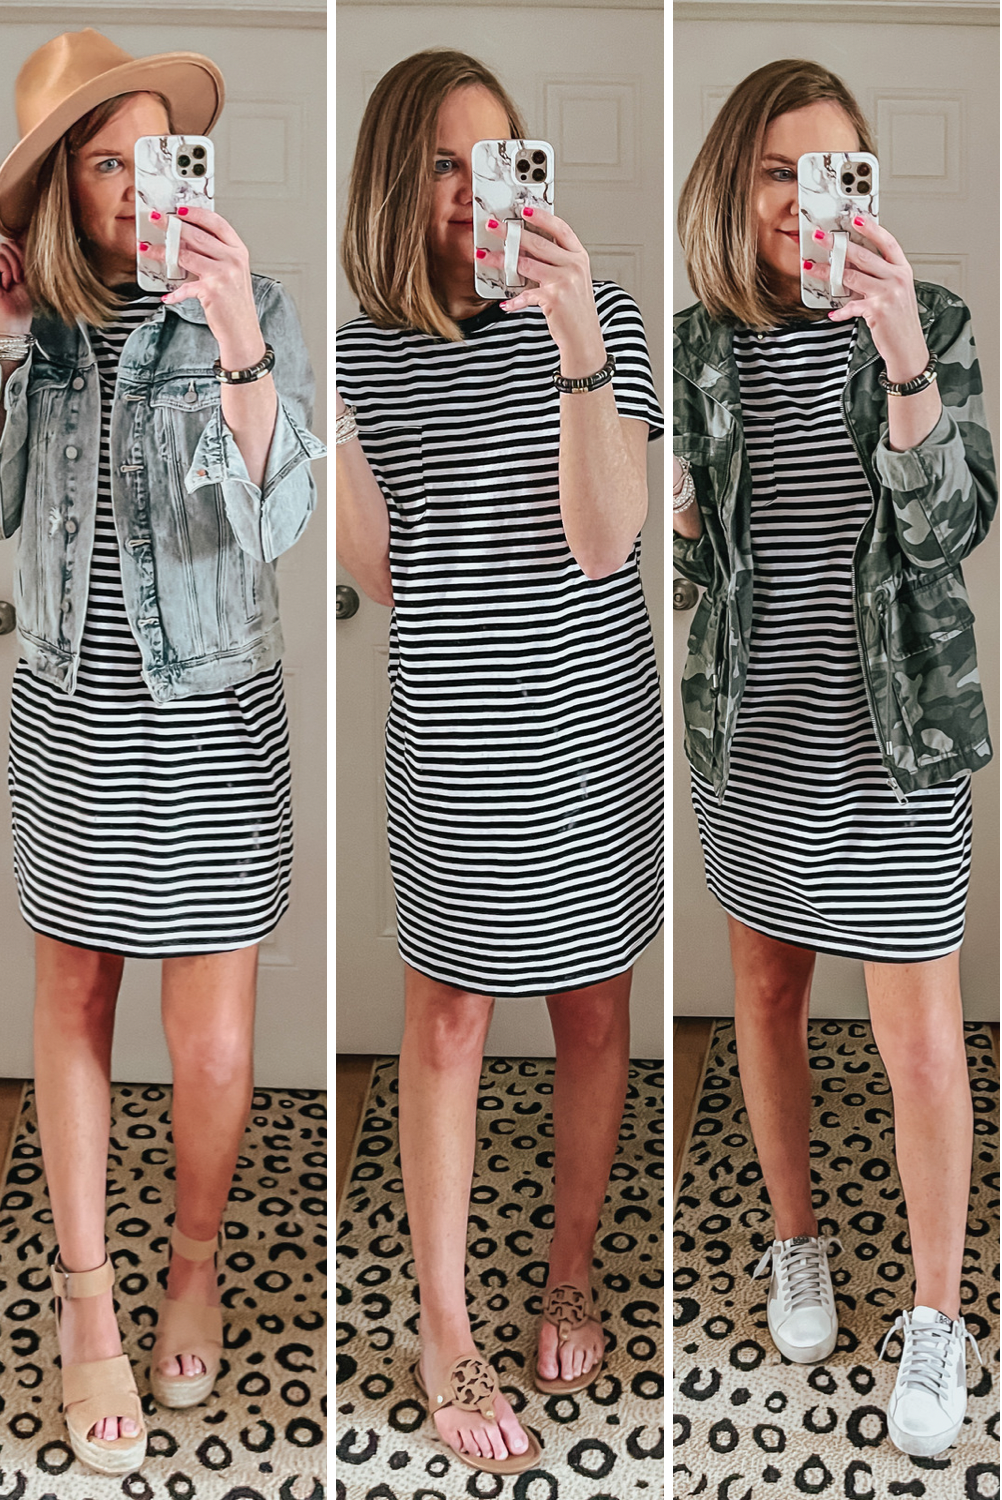 Spring Walmart Outfits that are Cute and Affordable, $10n tee shirt dress